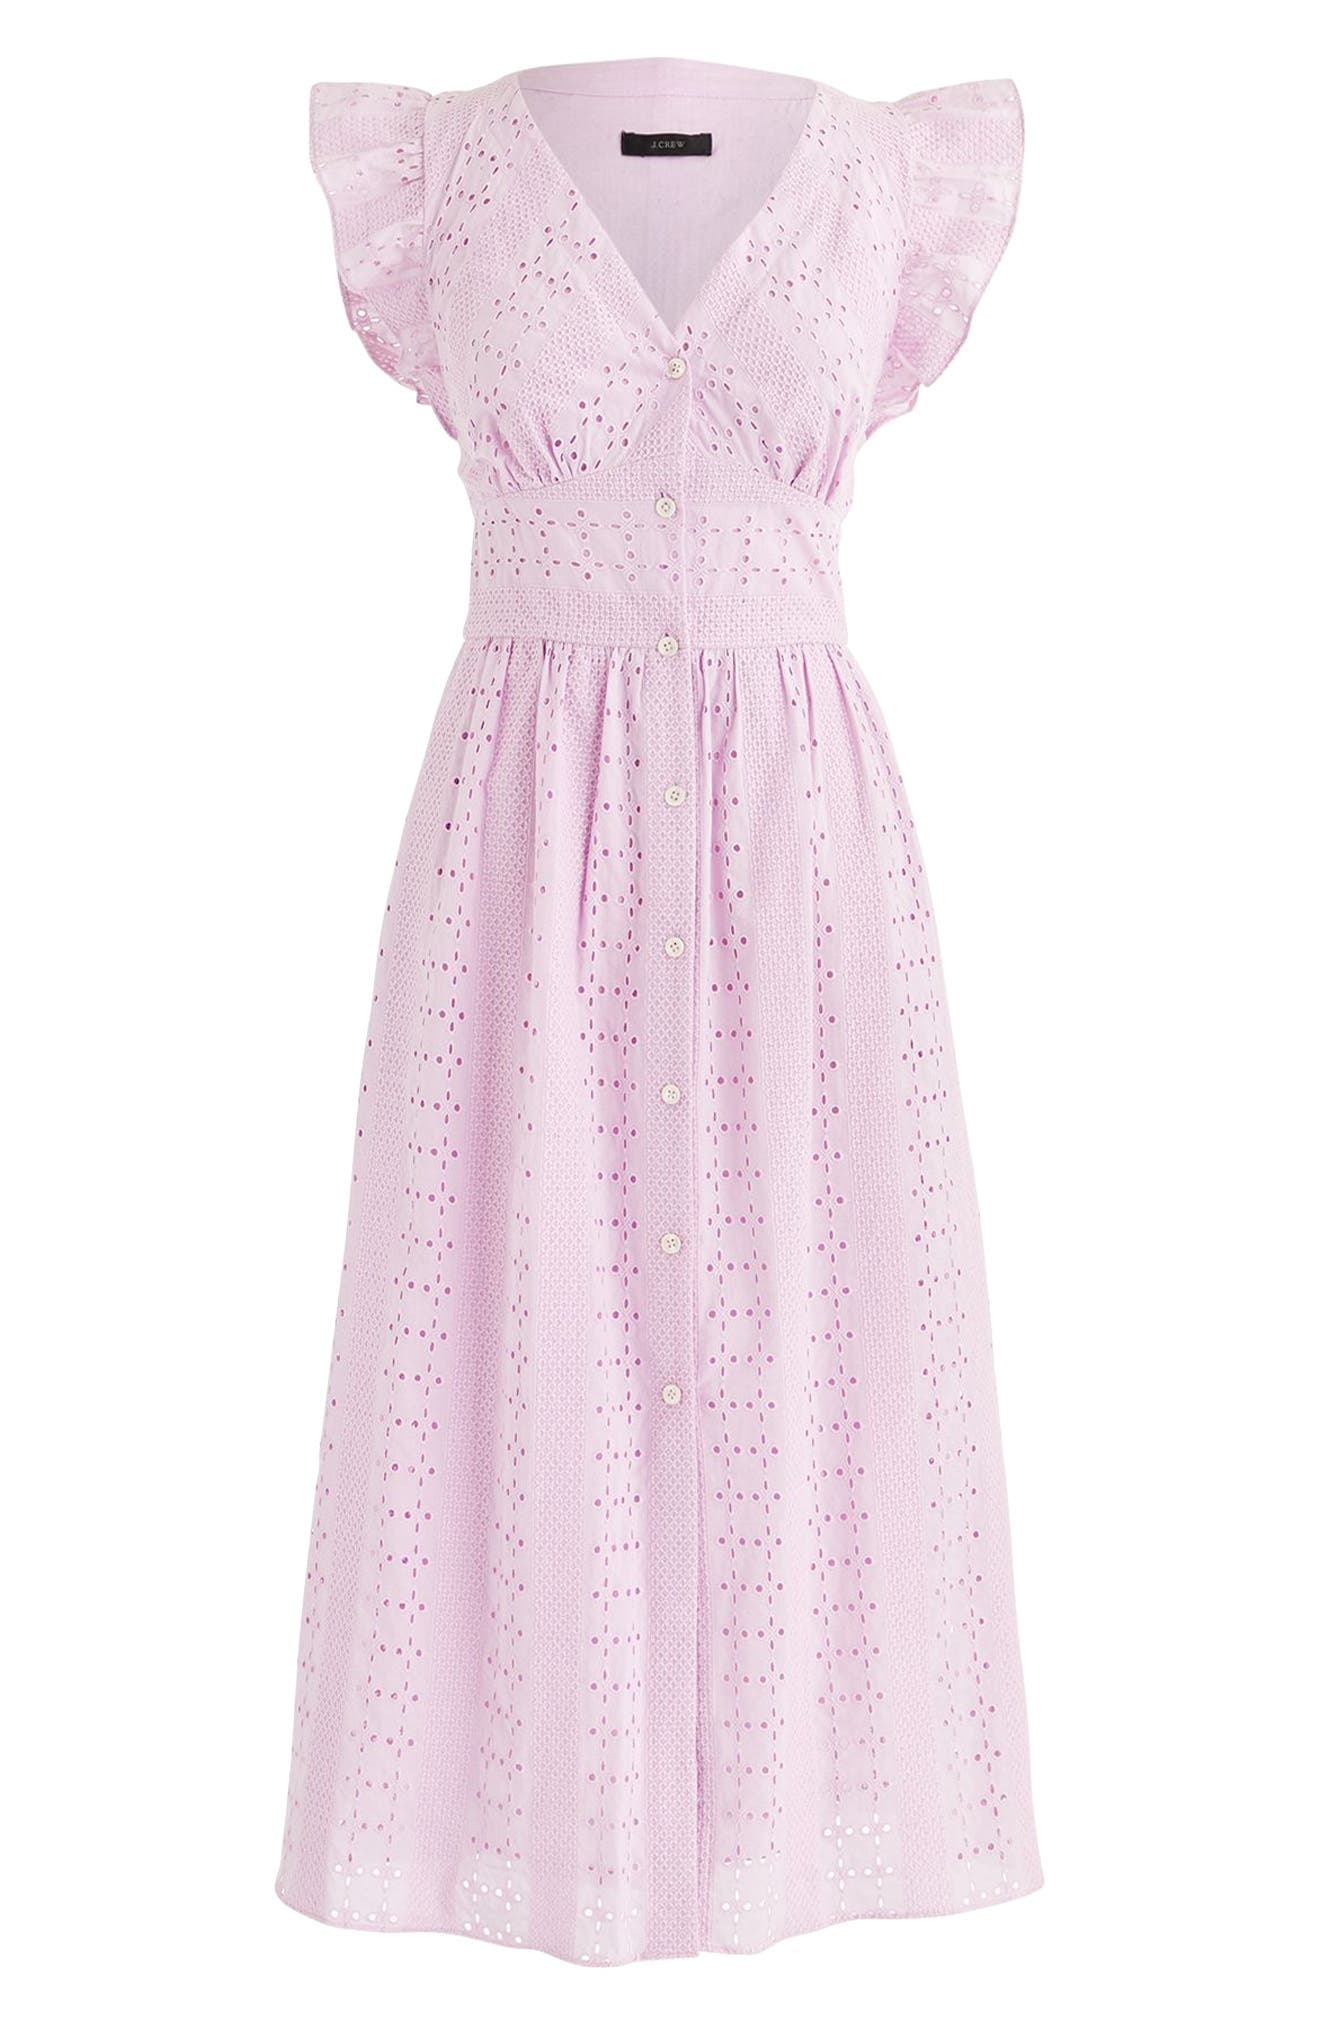 Ruffle Sleeve Eyelet Dress,                         Main,                         color, Lavender Mist